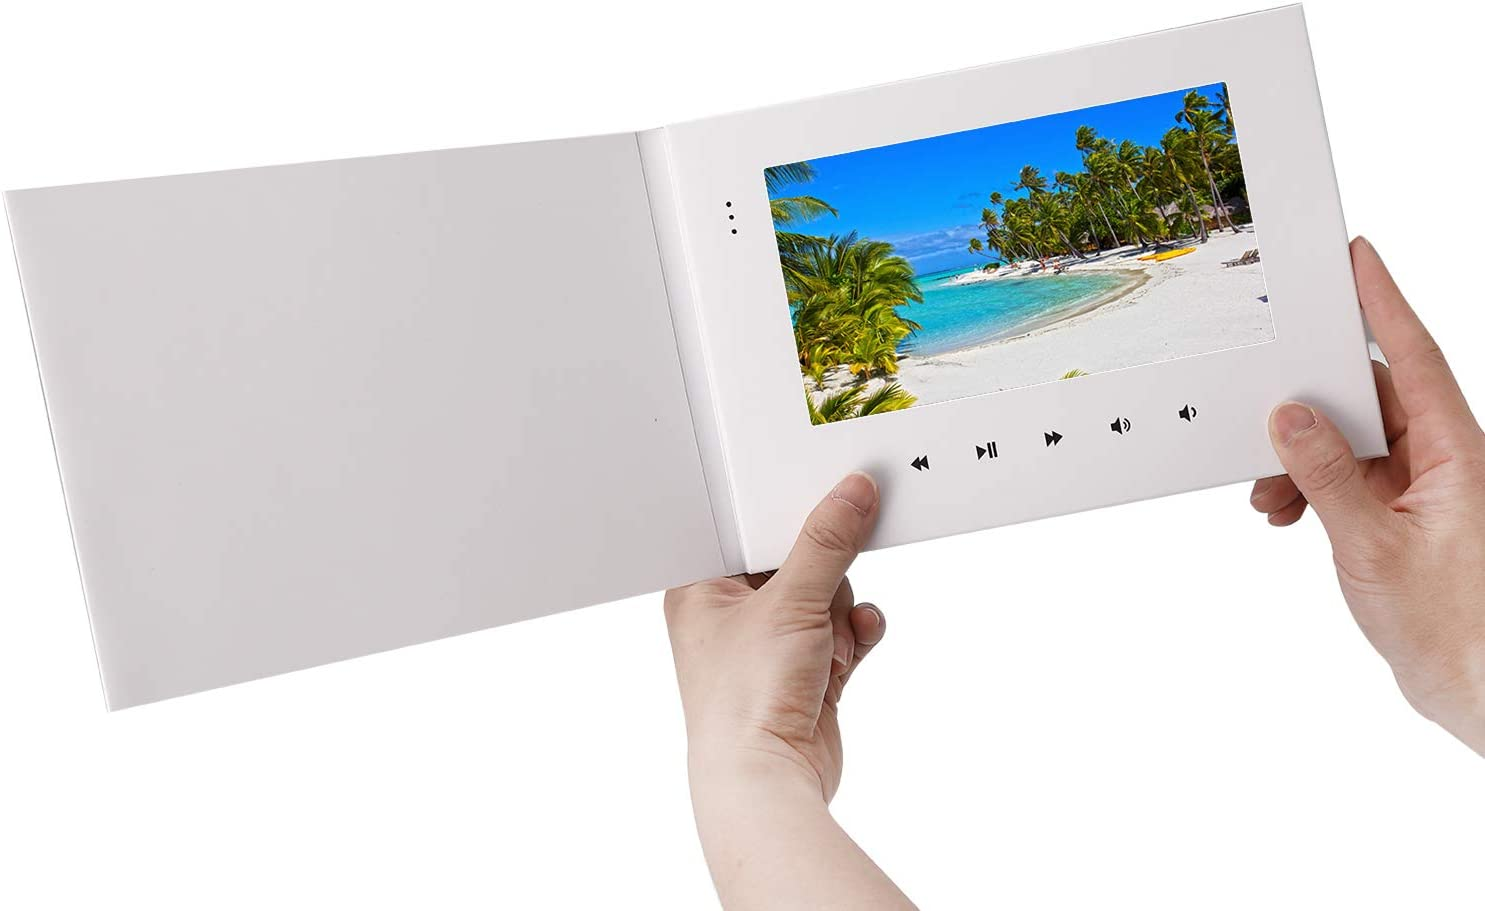 "LuguLake 7"" Video Greeting Card,Video Brochure for Father's Day, Christmas, Anniversary, Marketing Include 2G Memory and Rechargeable Battery LCD Screen Digital Brochures"